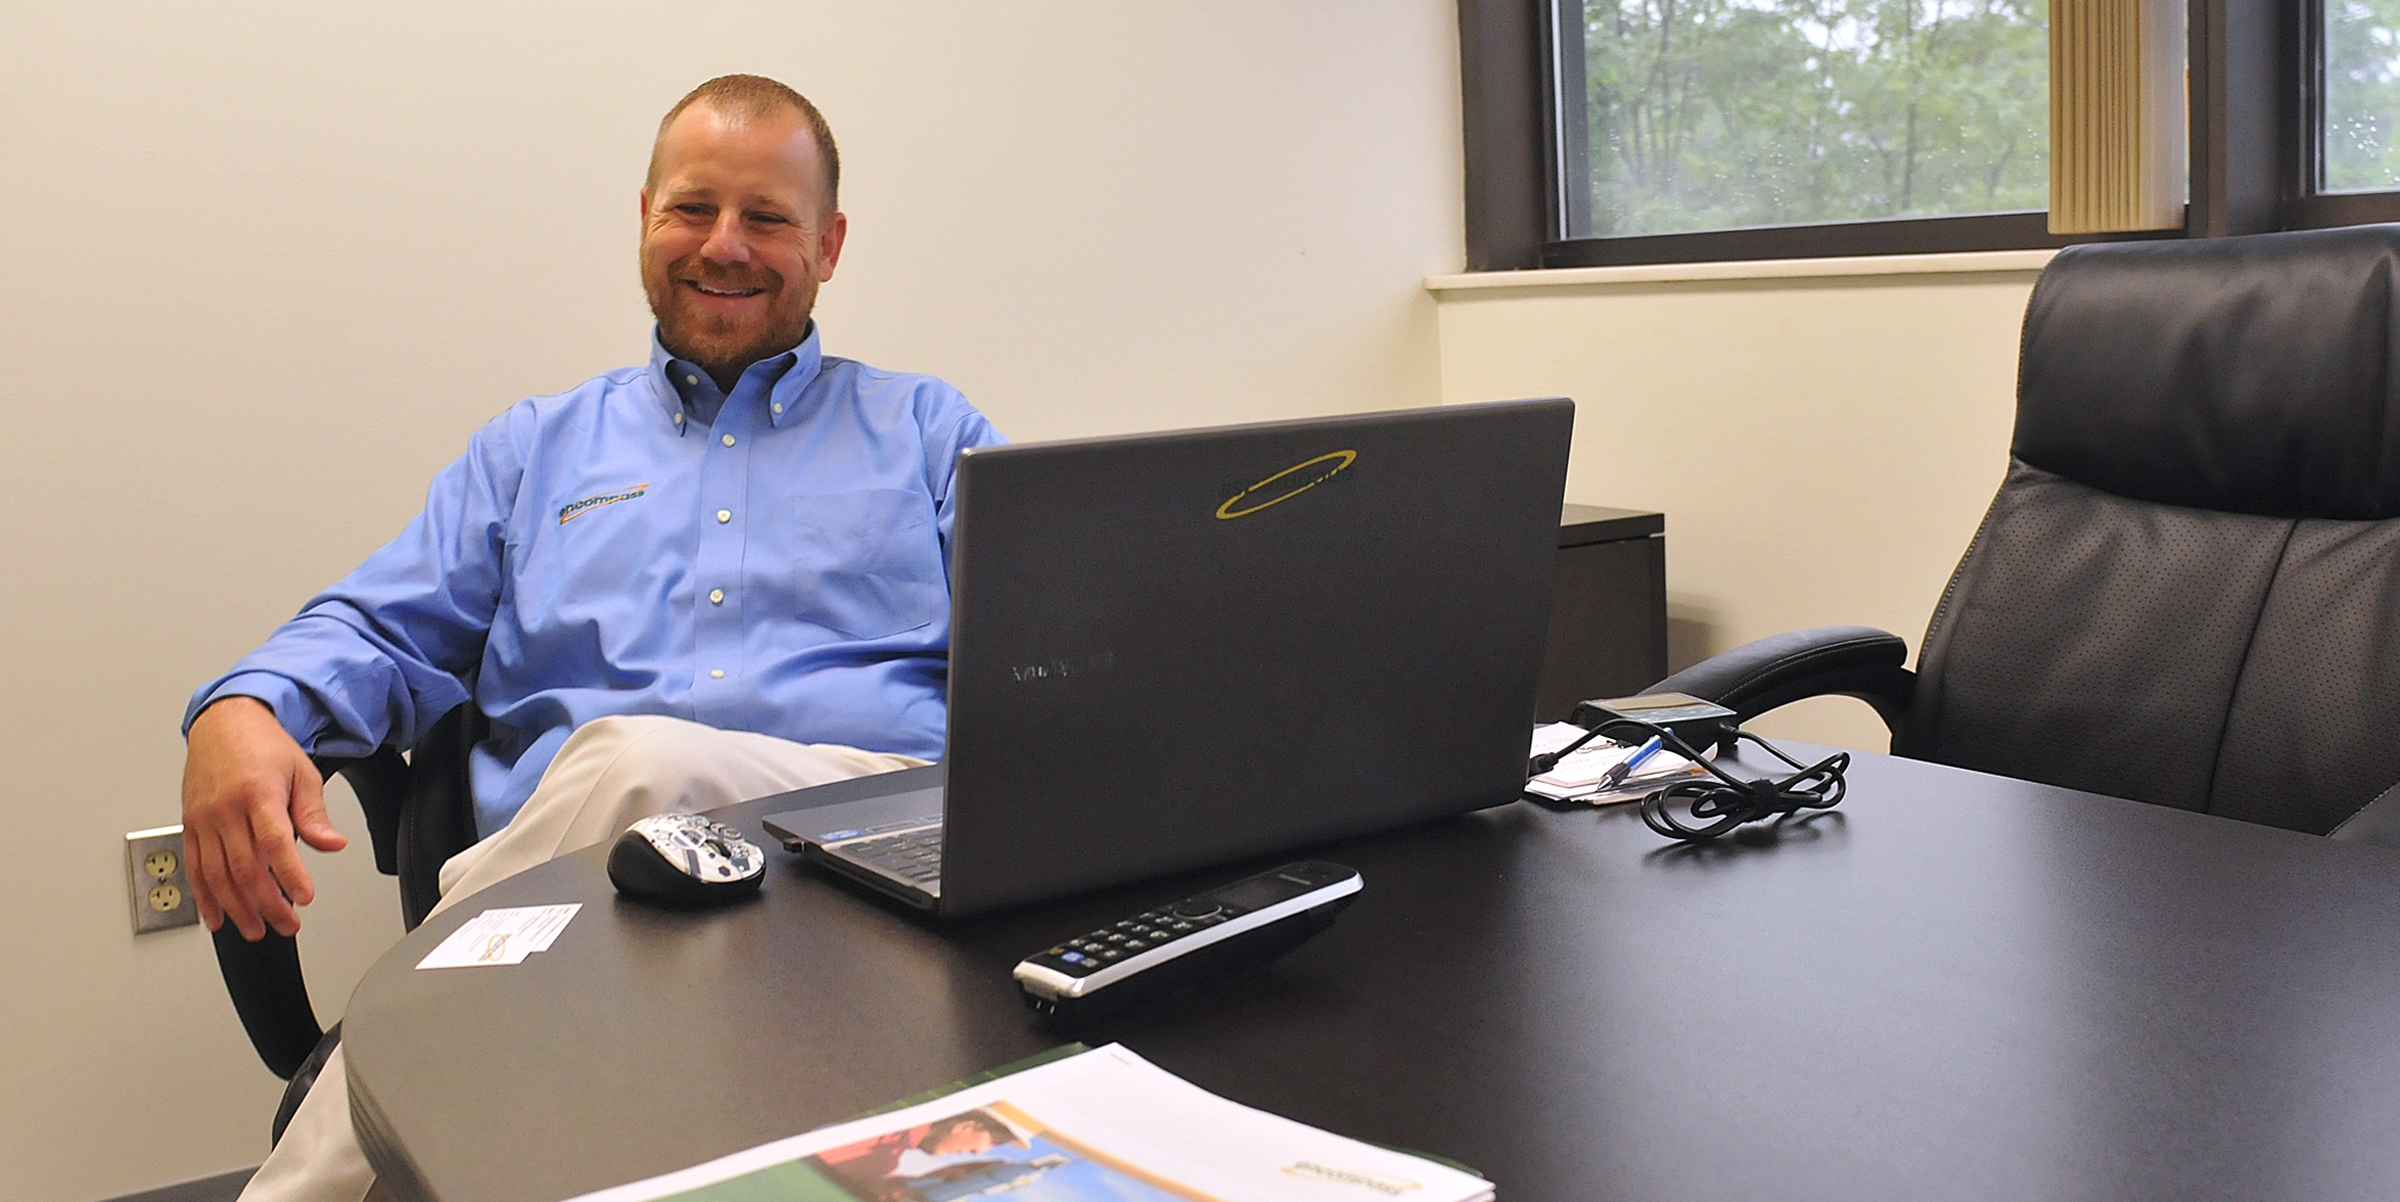 20140619lrencompassps03-2 B. J. Whitman of Encompass at the company's office in Bridgeville